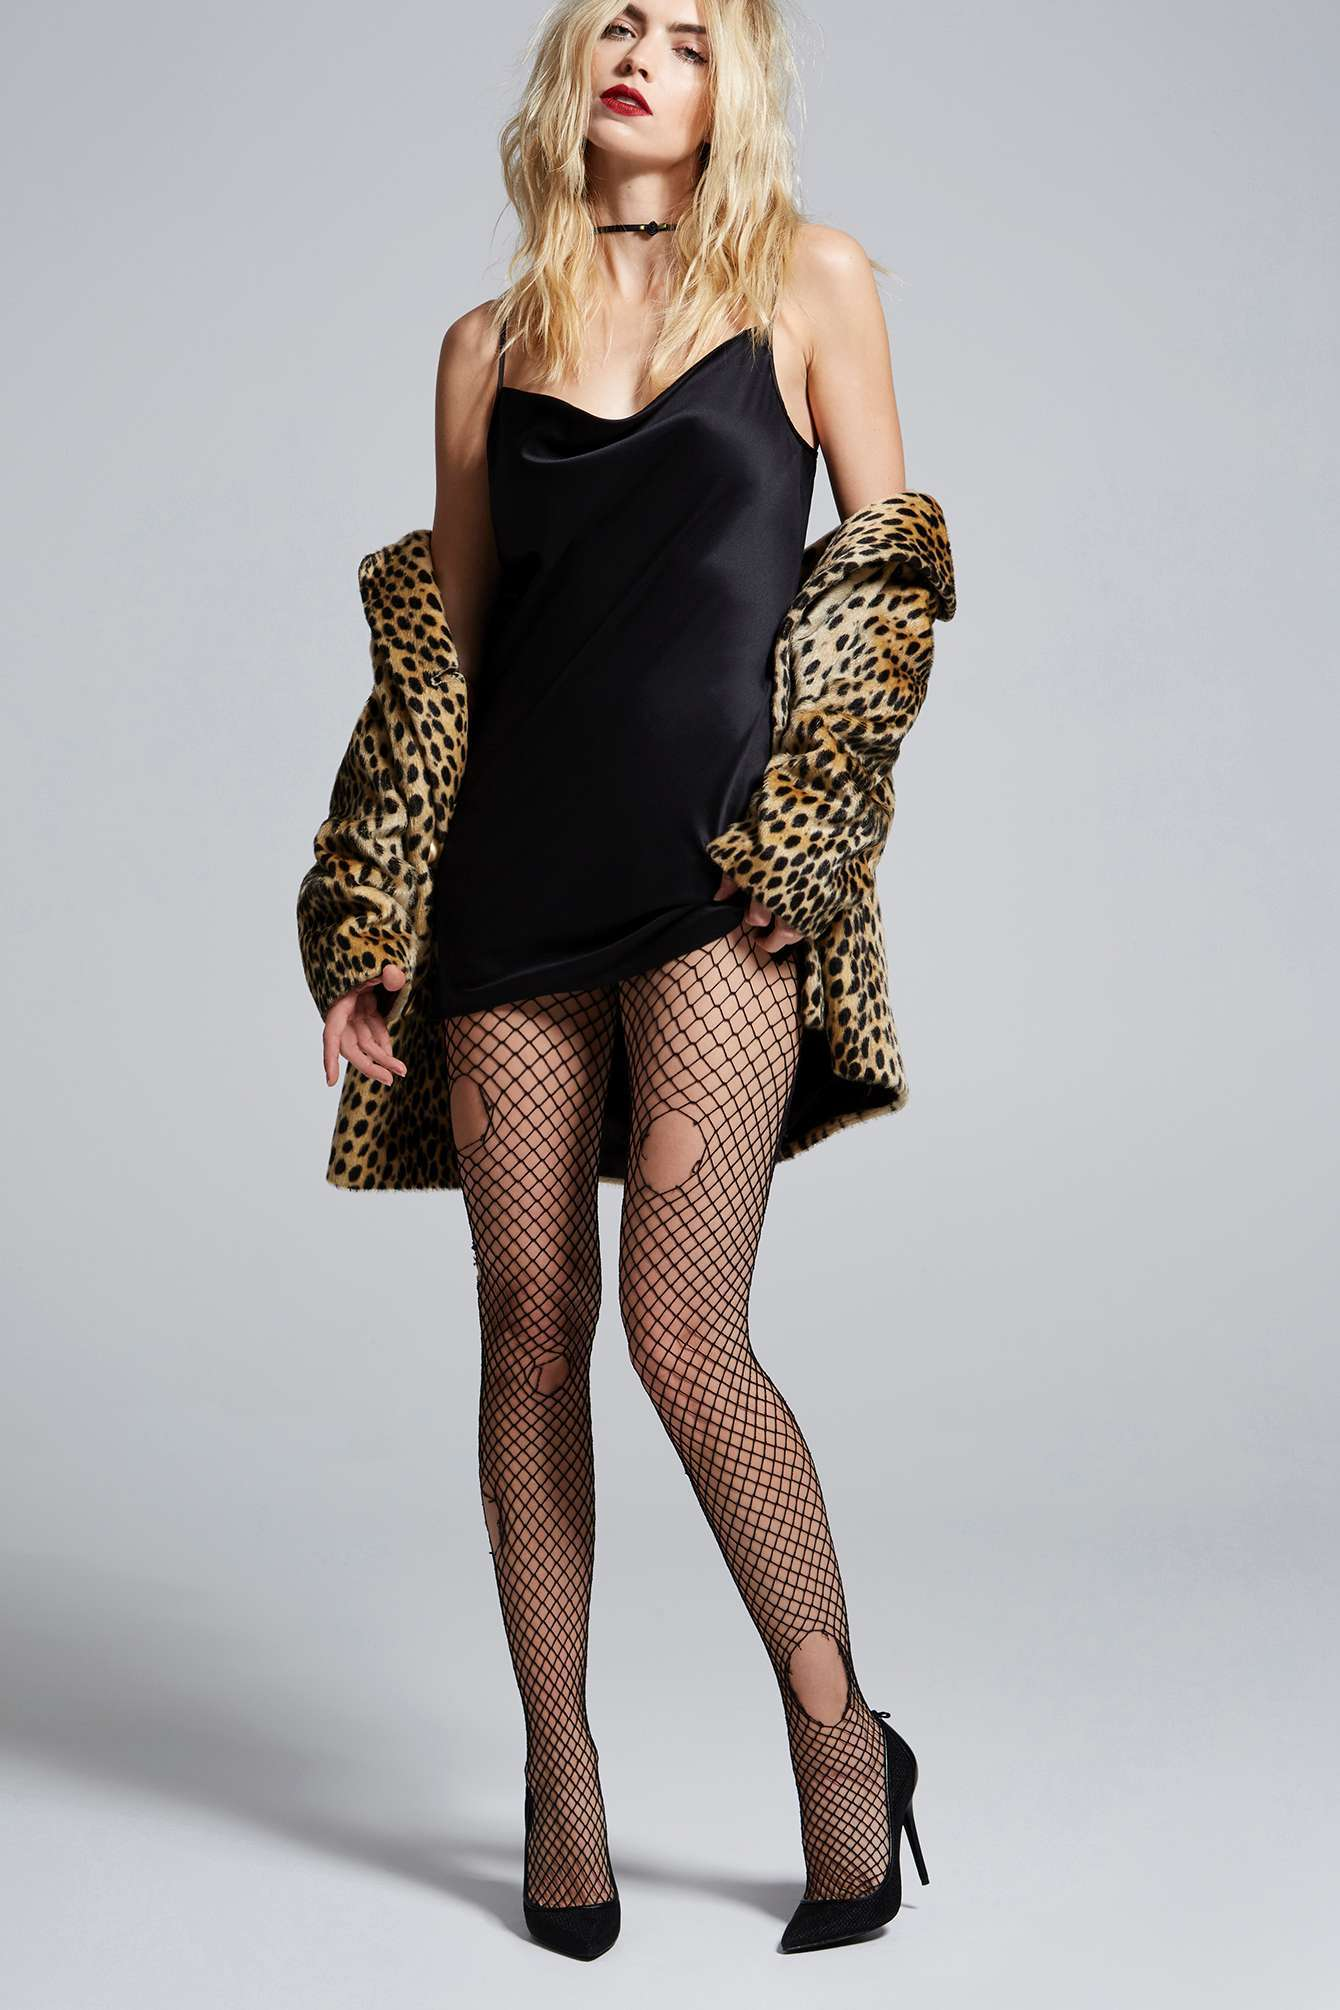 Nasty Gal X Courtney Love